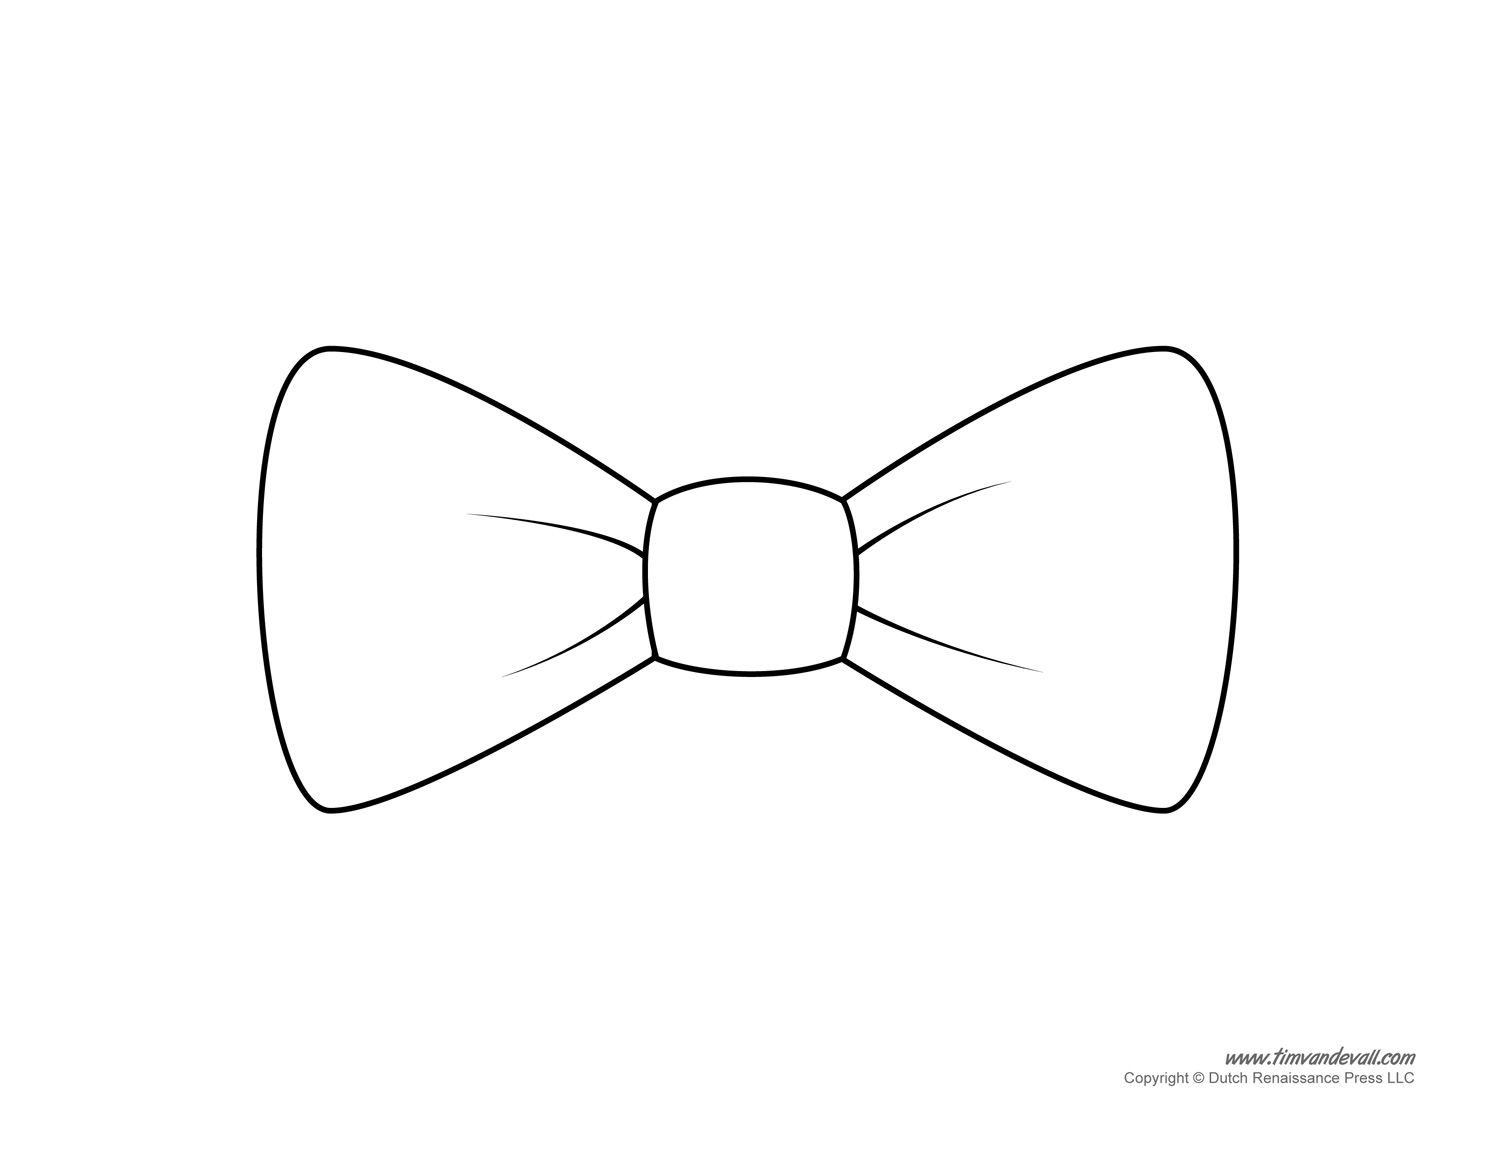 Bows clipart bow tie. Paper template printable baby